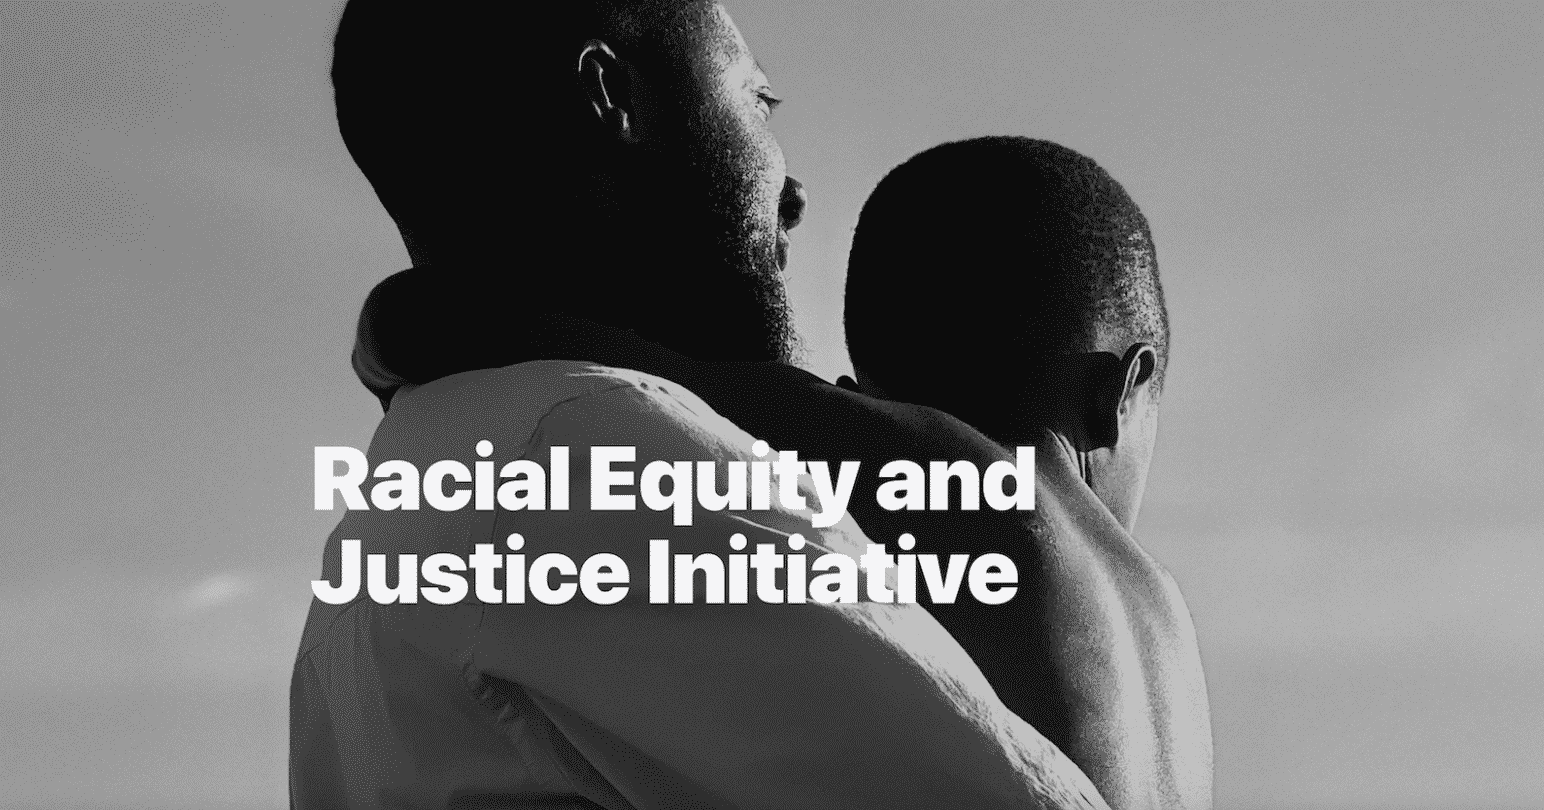 Racial Equity and Justice Initiative